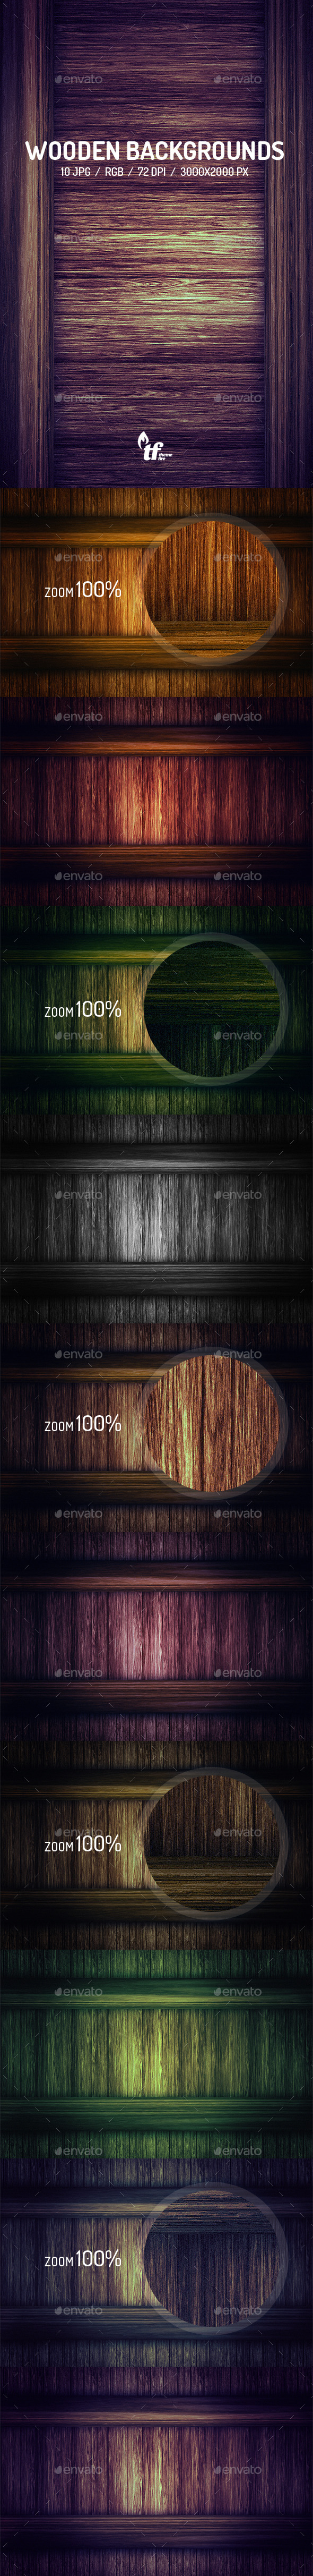 GraphicRiver Wooden Backgrounds 8802226